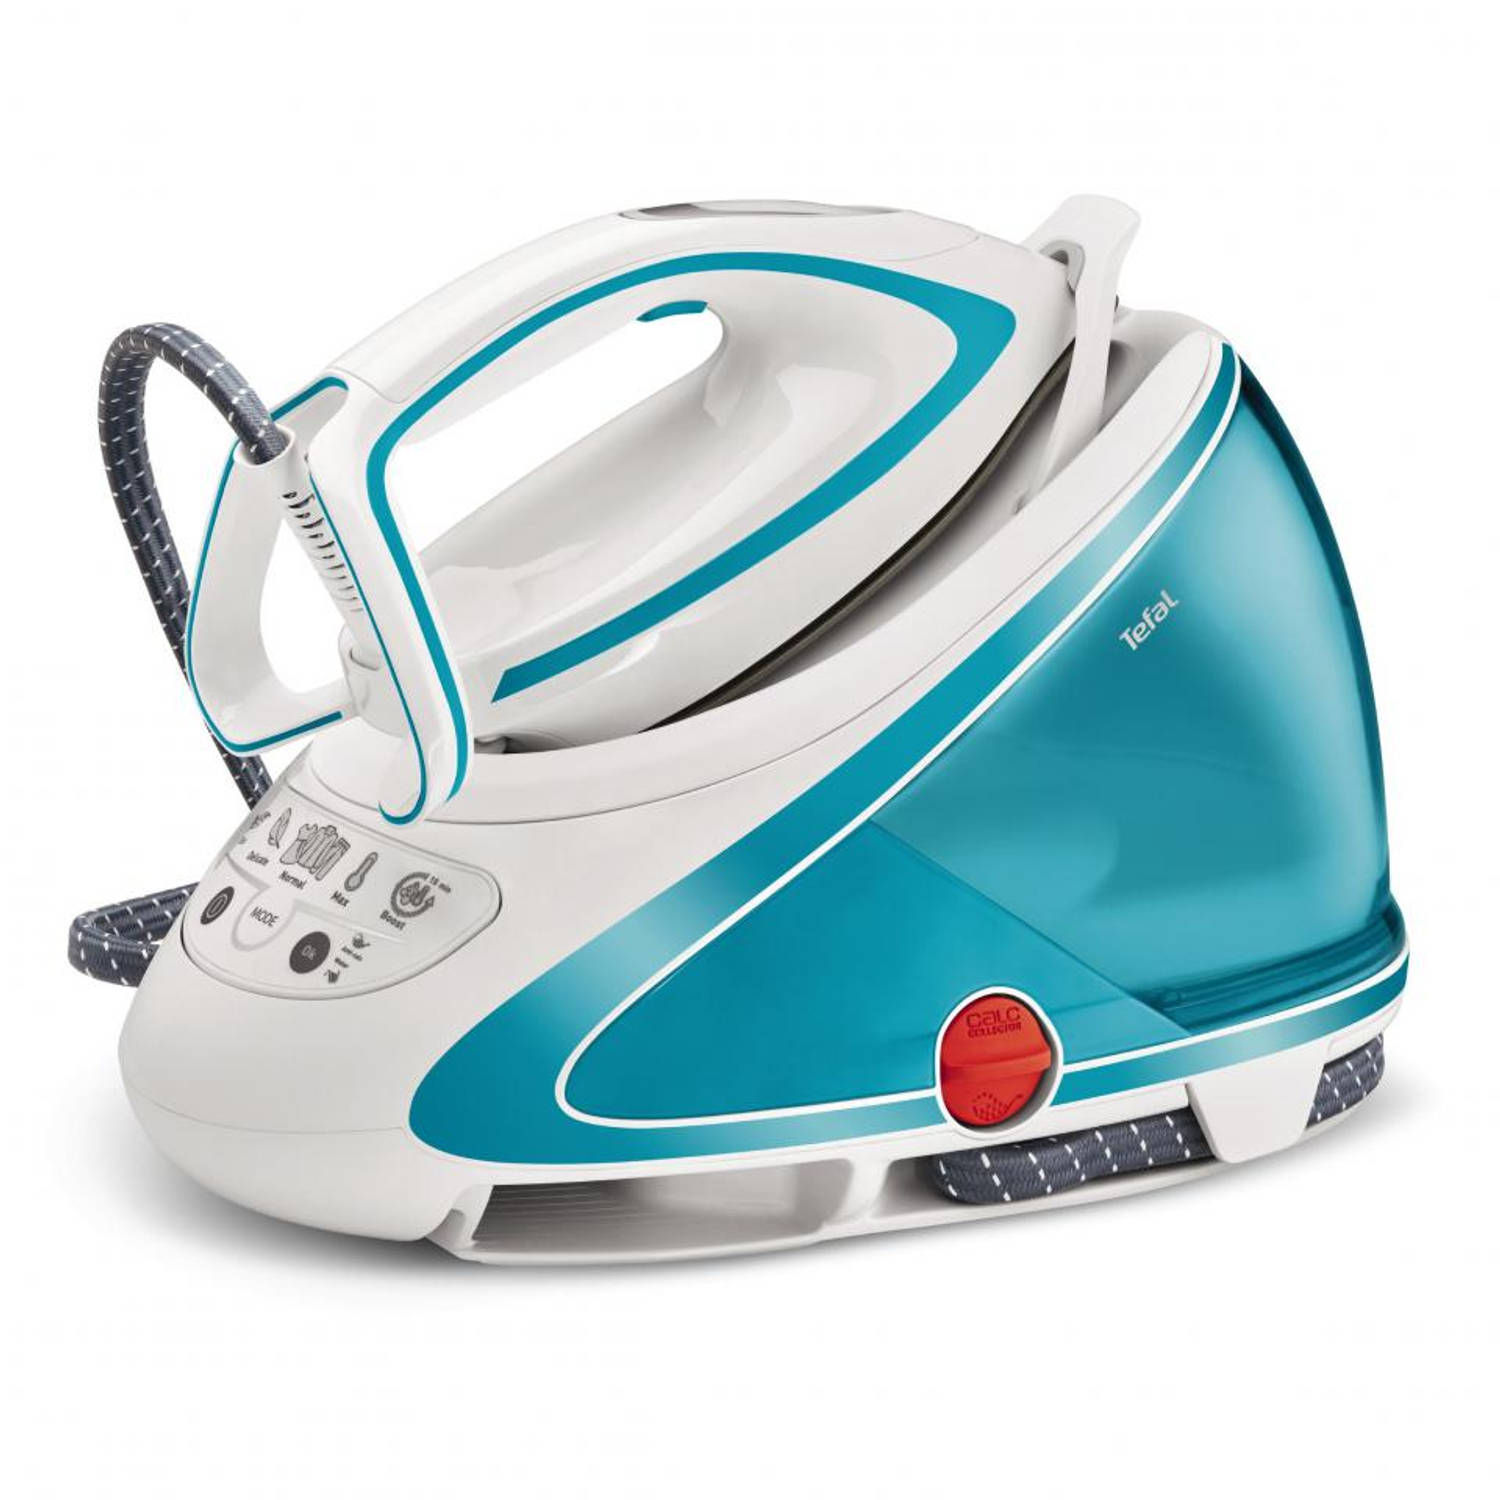 Tefal stoomgenerator Pro Express Ultimate Care GV9568